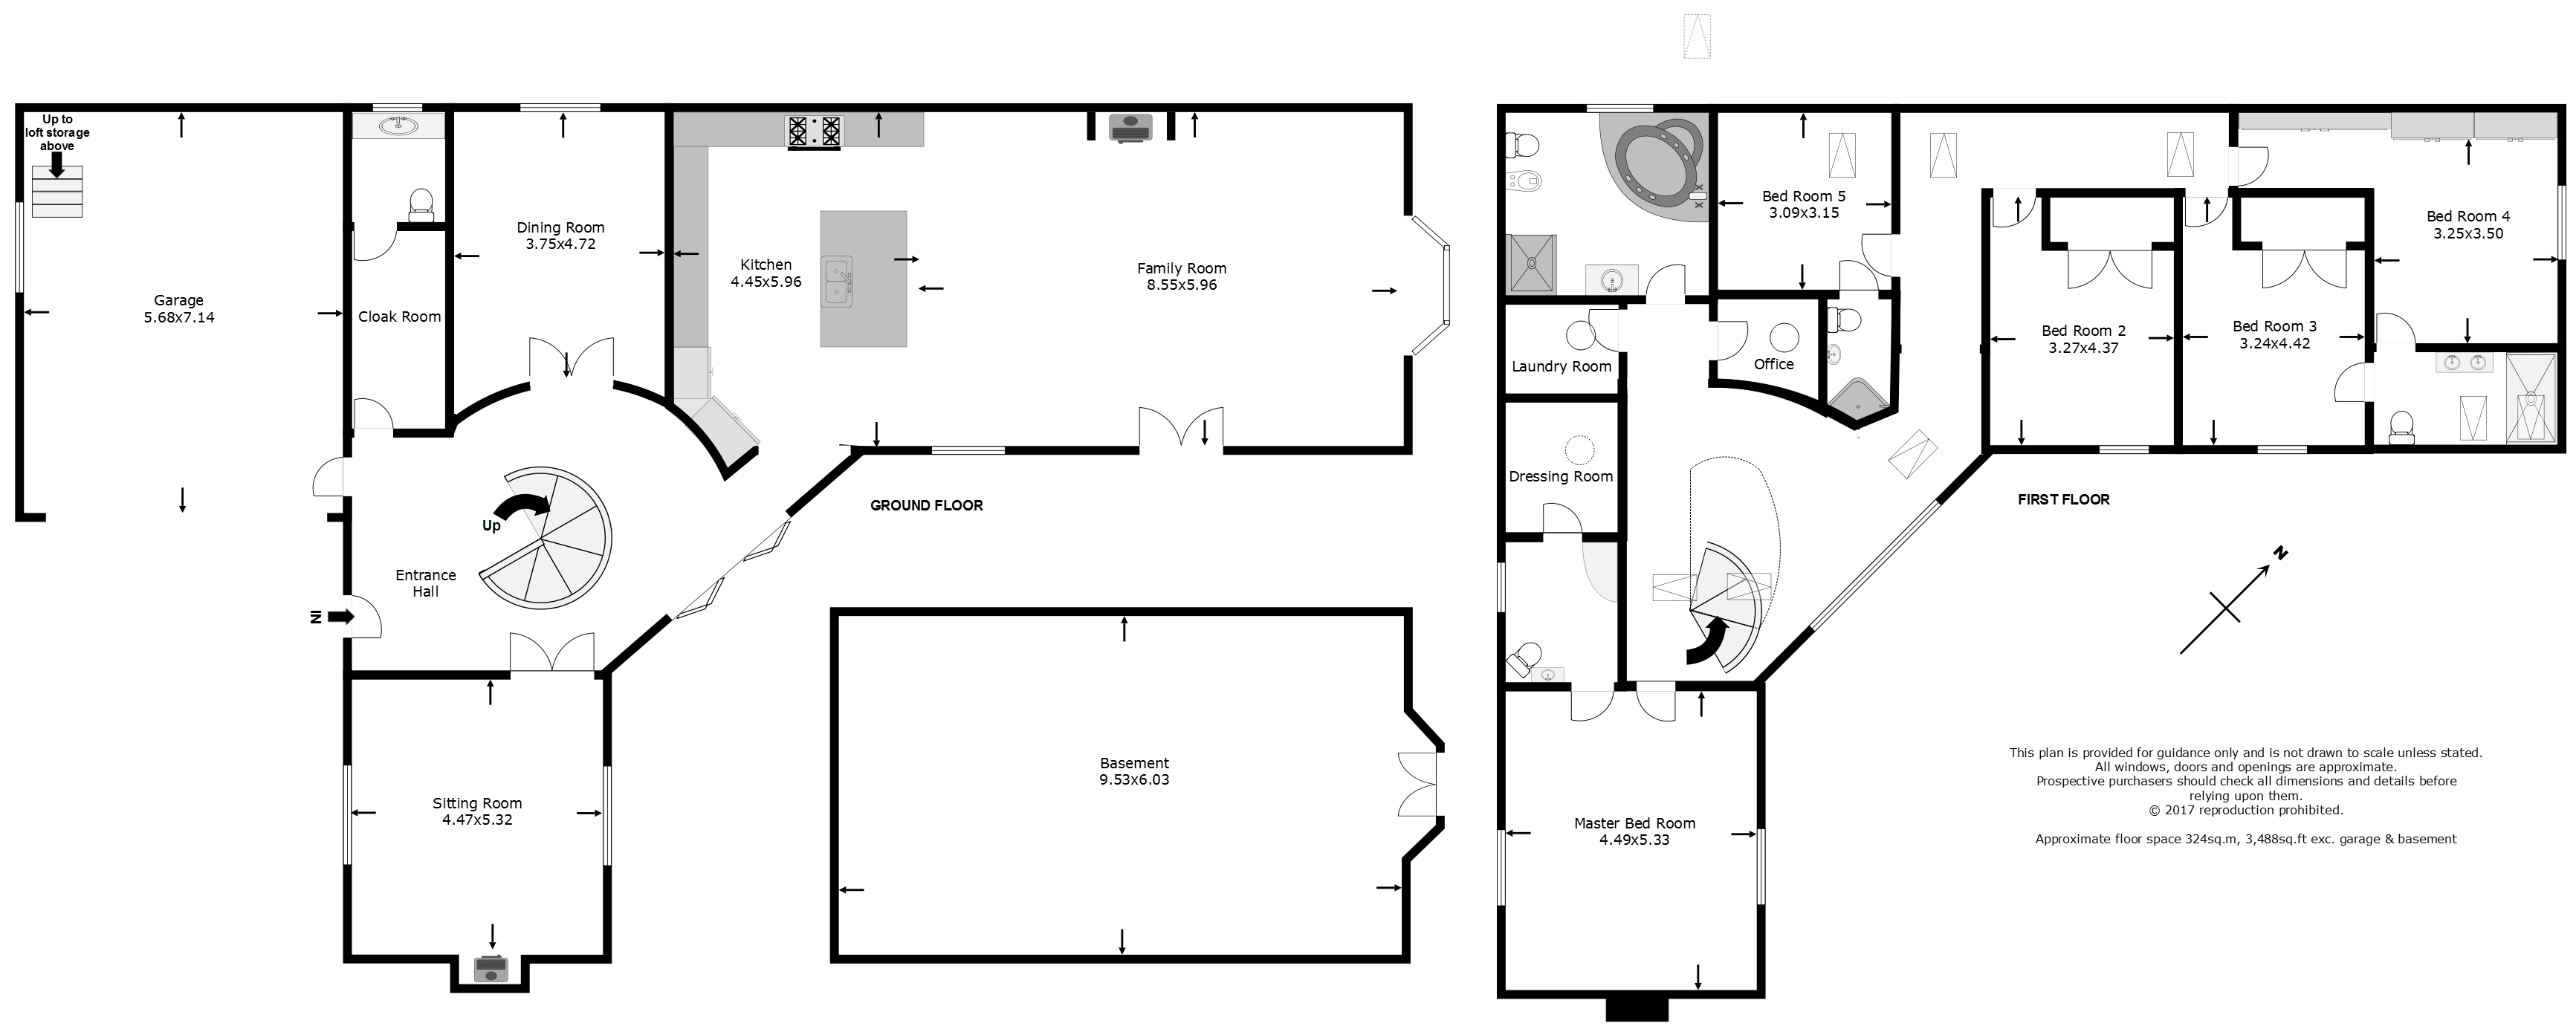 Eight bedroom main manor and a separate four bedroom gatehouse - Floorplan View Original